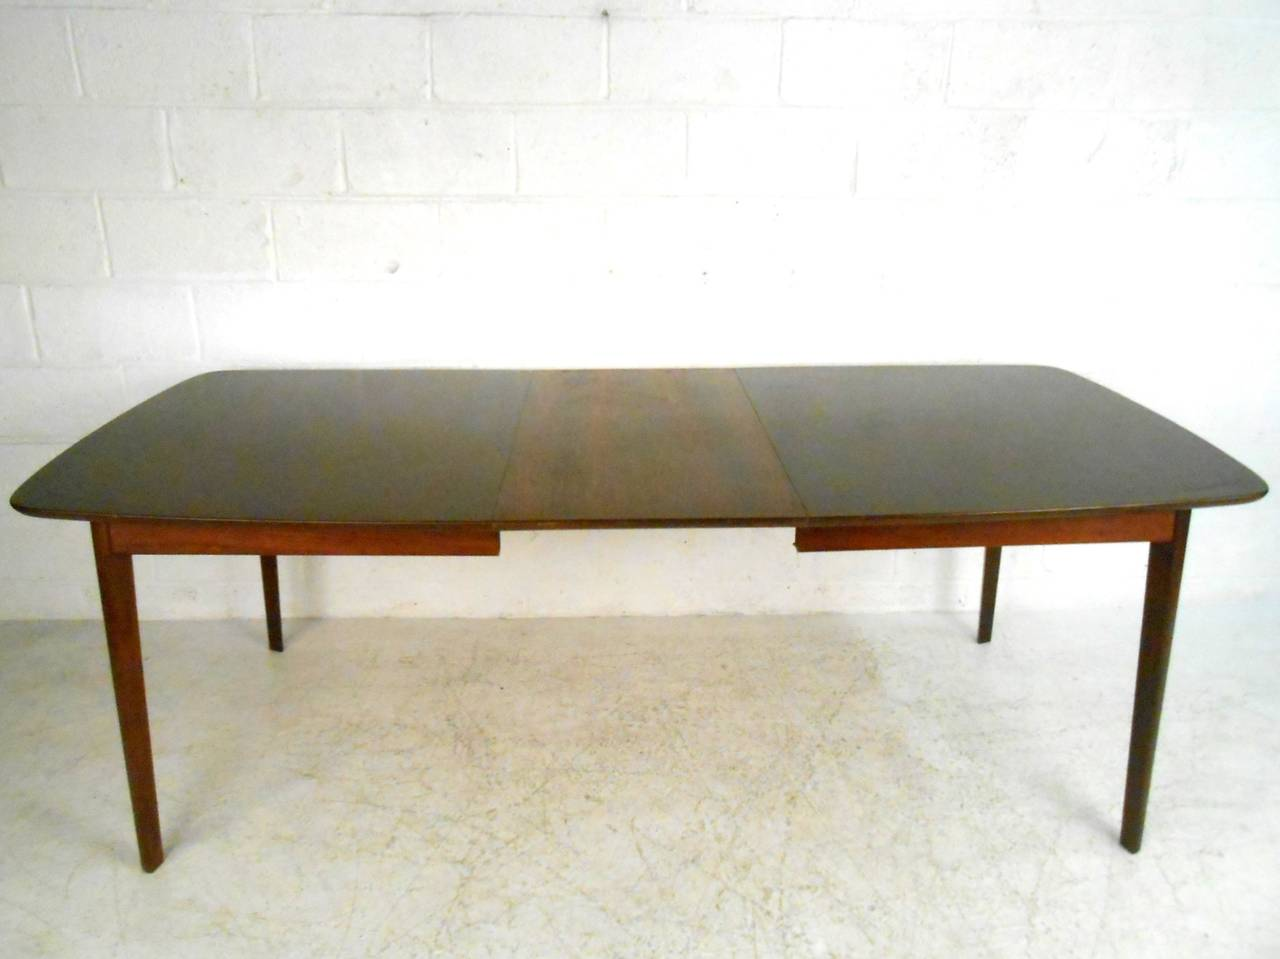 High Back Dining Table Sets ~ Unique mid century modern dining set table with high back